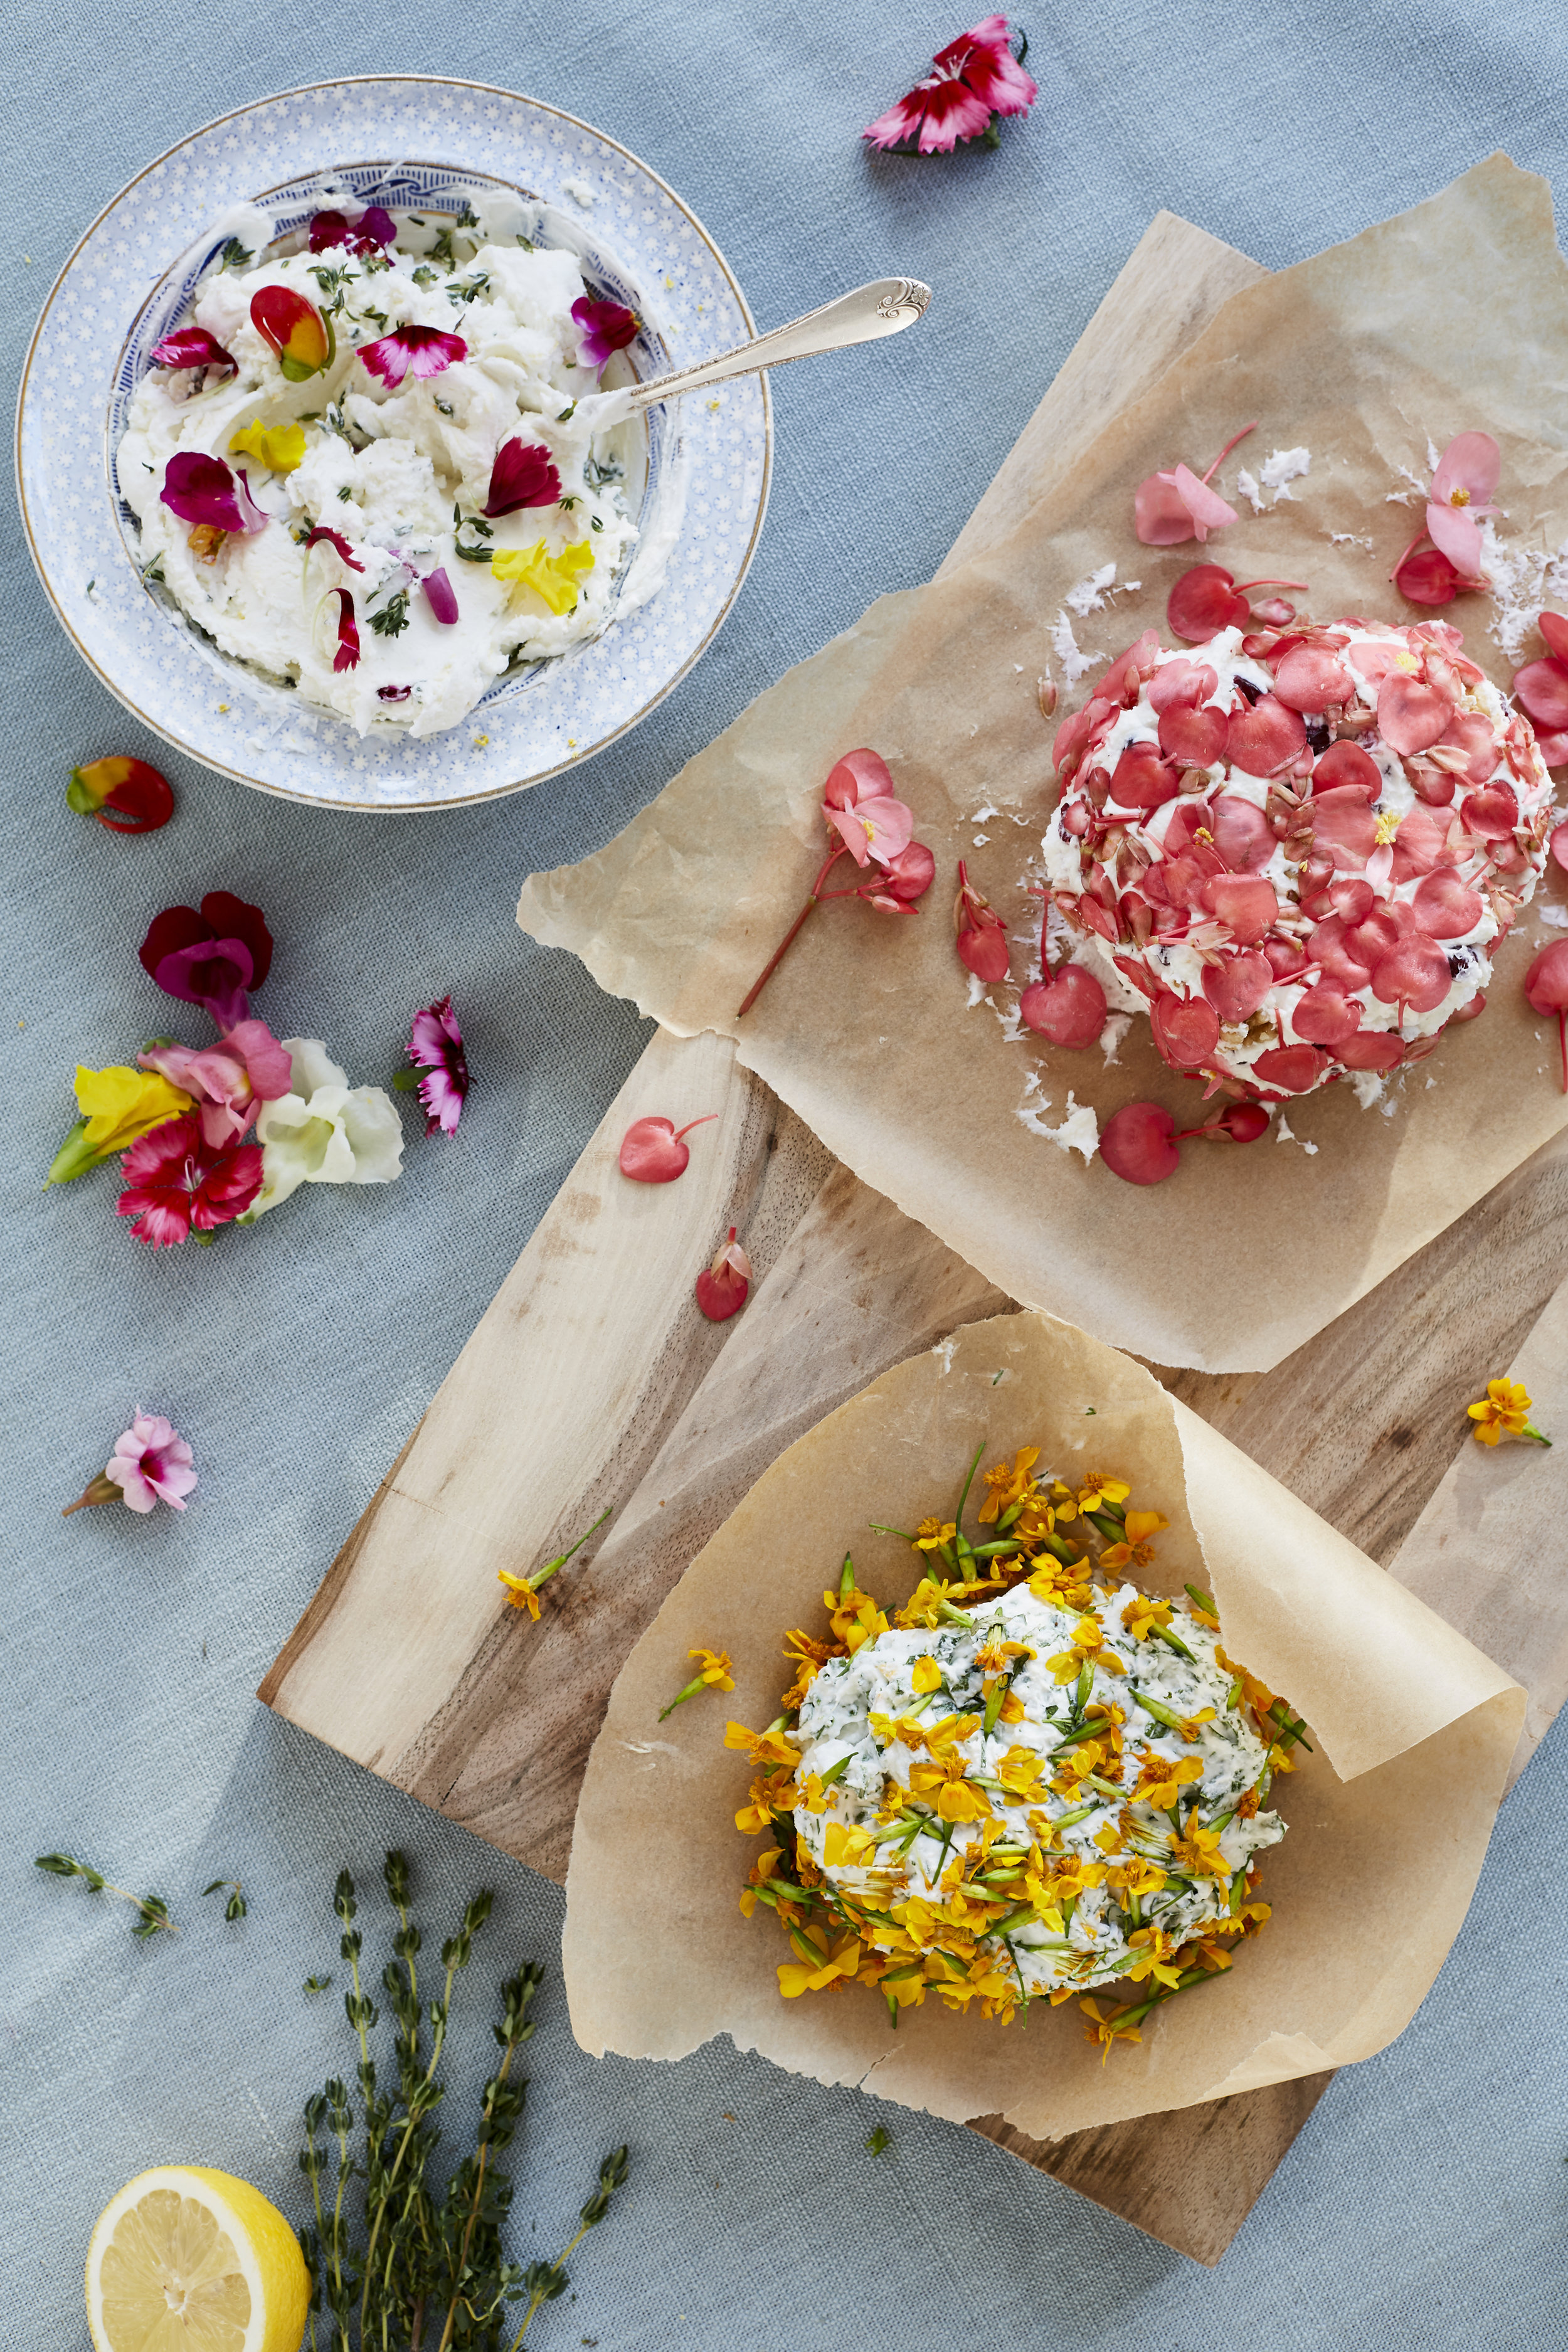 ideas for using Edible flowers as featured in 91 Magazine